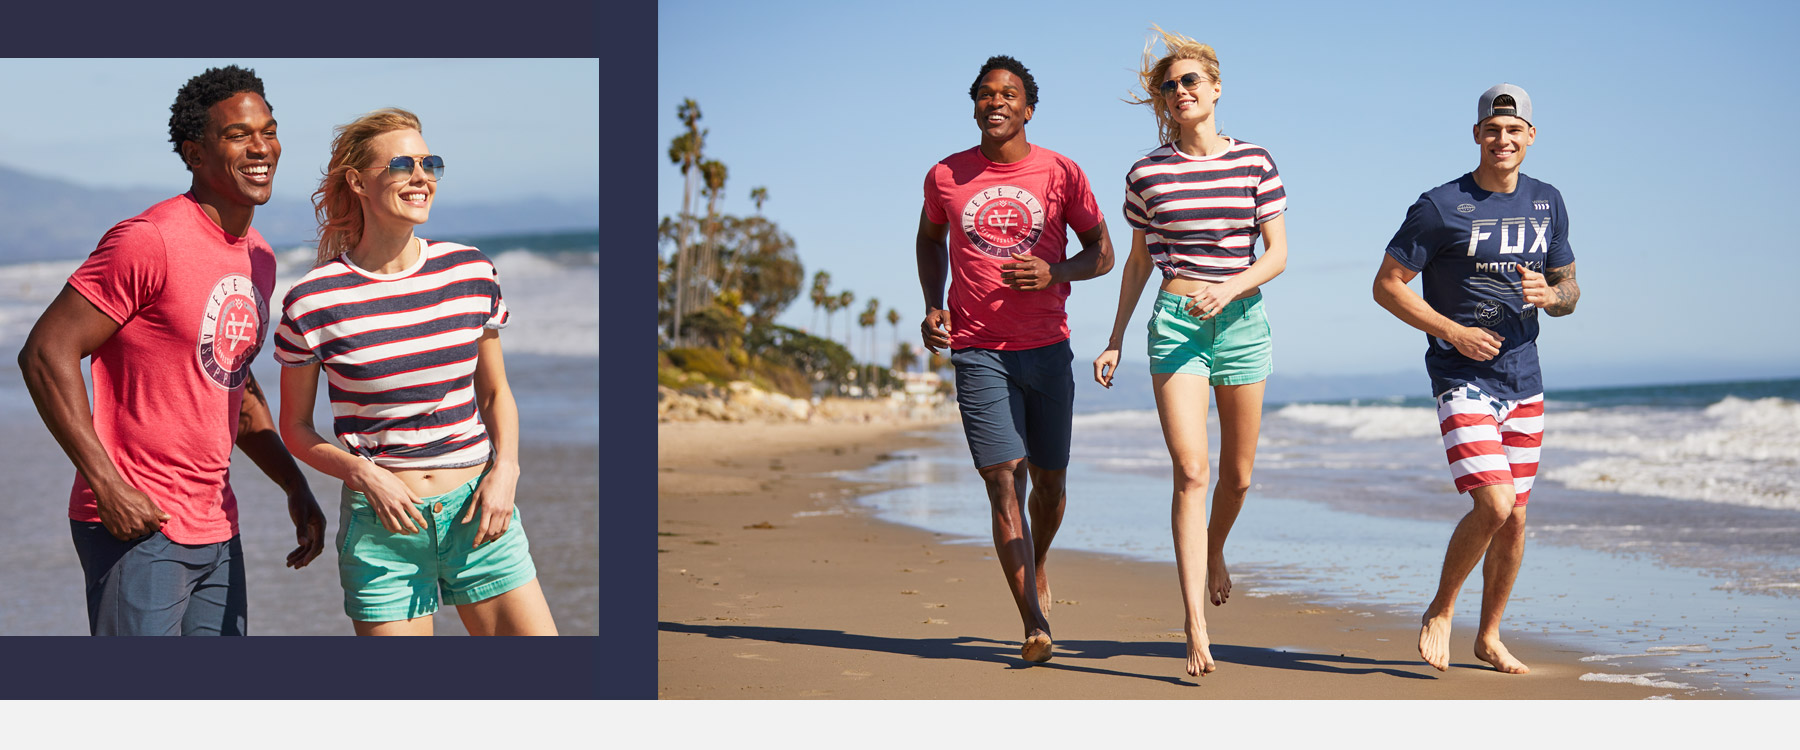 Guy wearing a red Veece graphic tee with blue shorts. A girl wearing blue and white striped tee with green shorts. A guy wearing a blue Fox graphic tee with red and white striped boardshort.